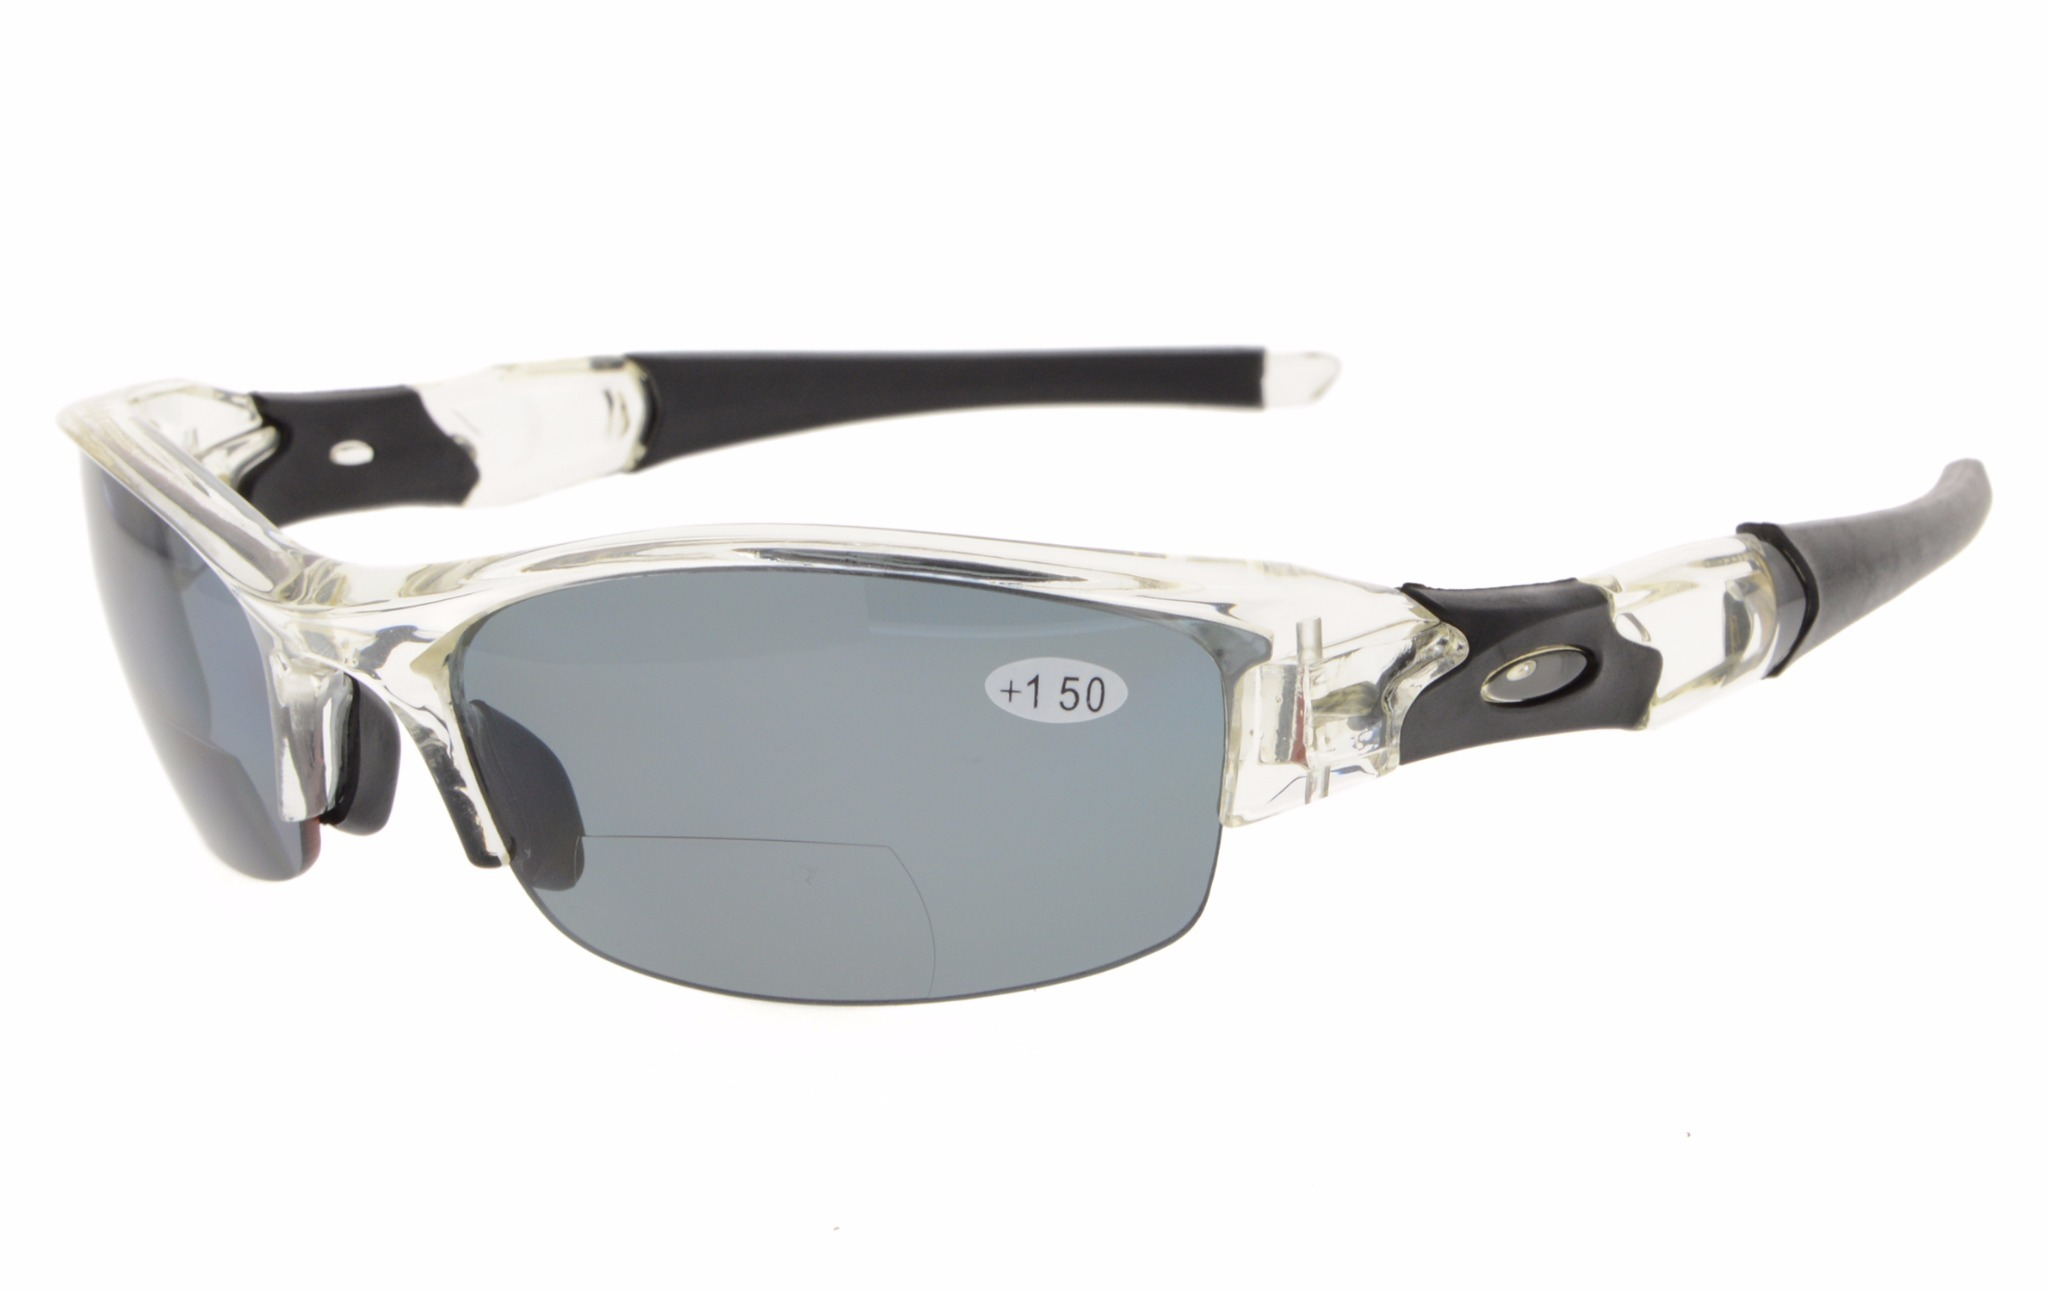 37140e72e3 Eyekepper TR90 Sports Half-Rimless Polarized Bifocal Reading Sunglasses  TH6166PGSG-Clear Frame